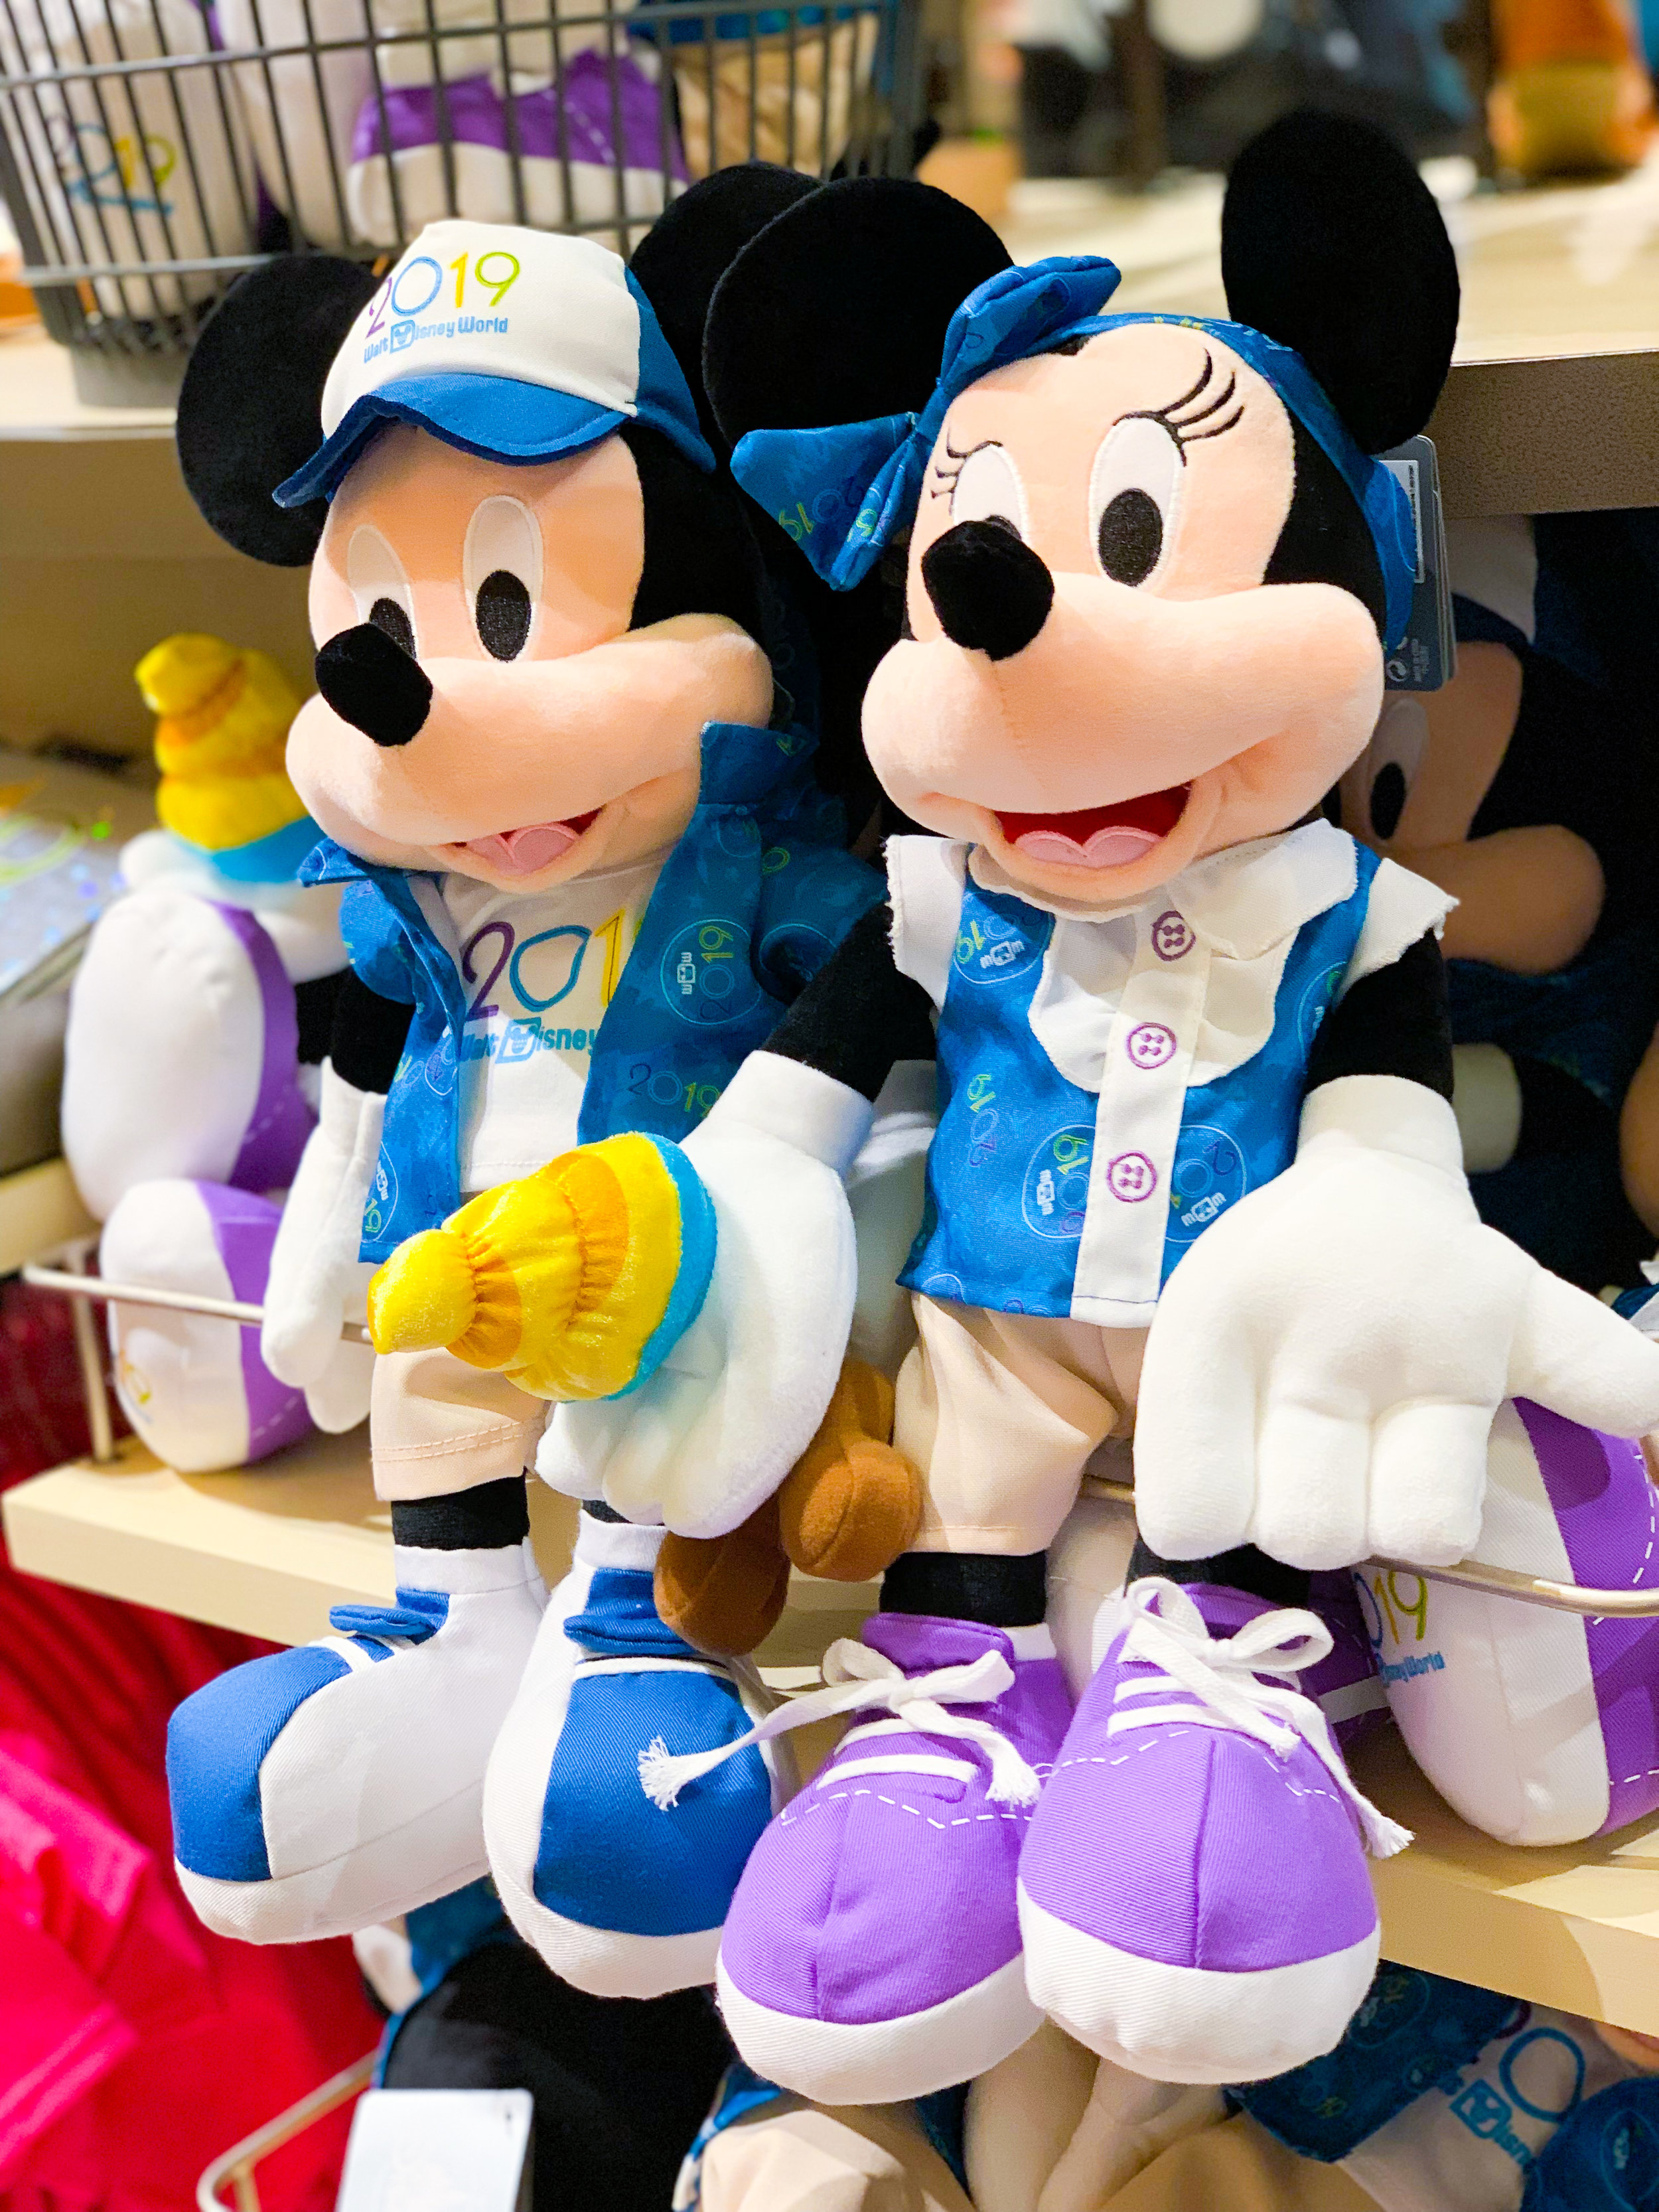 This Minnie and Mickey 2019 plush is just too cute for words!